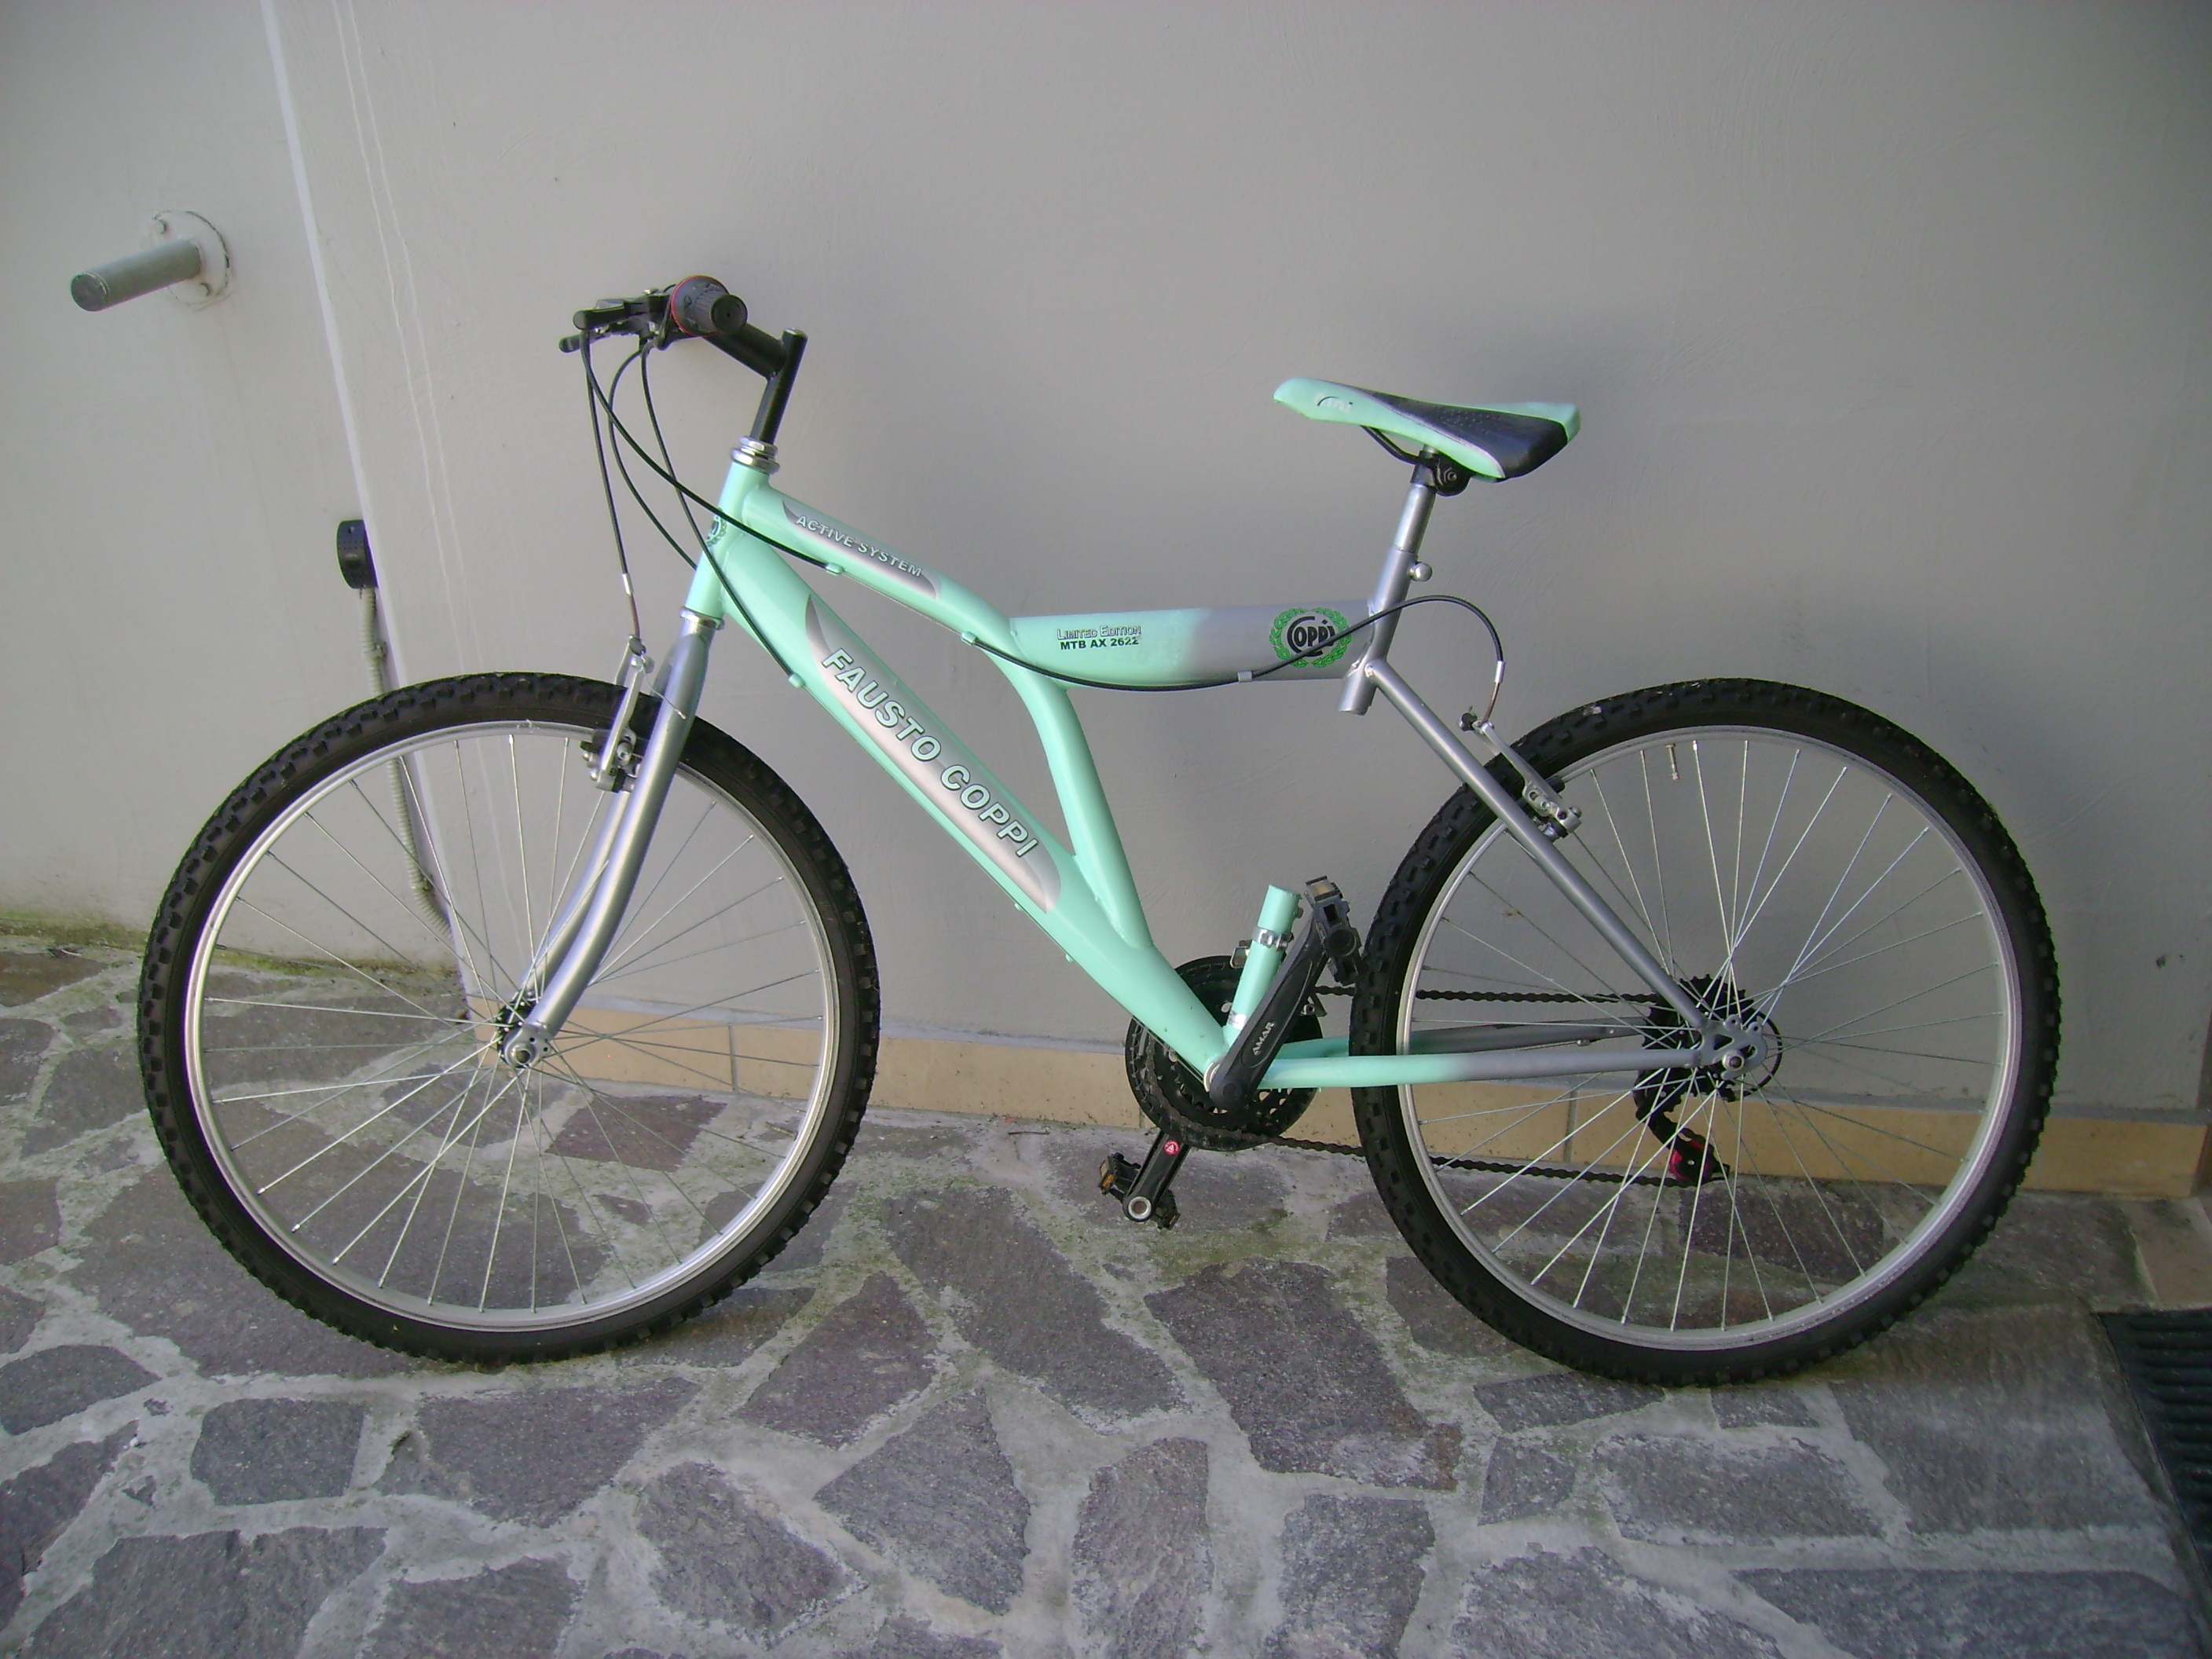 Mountain Bike Fausto Coppi Limited Edition Mtb Ax 2622 Active